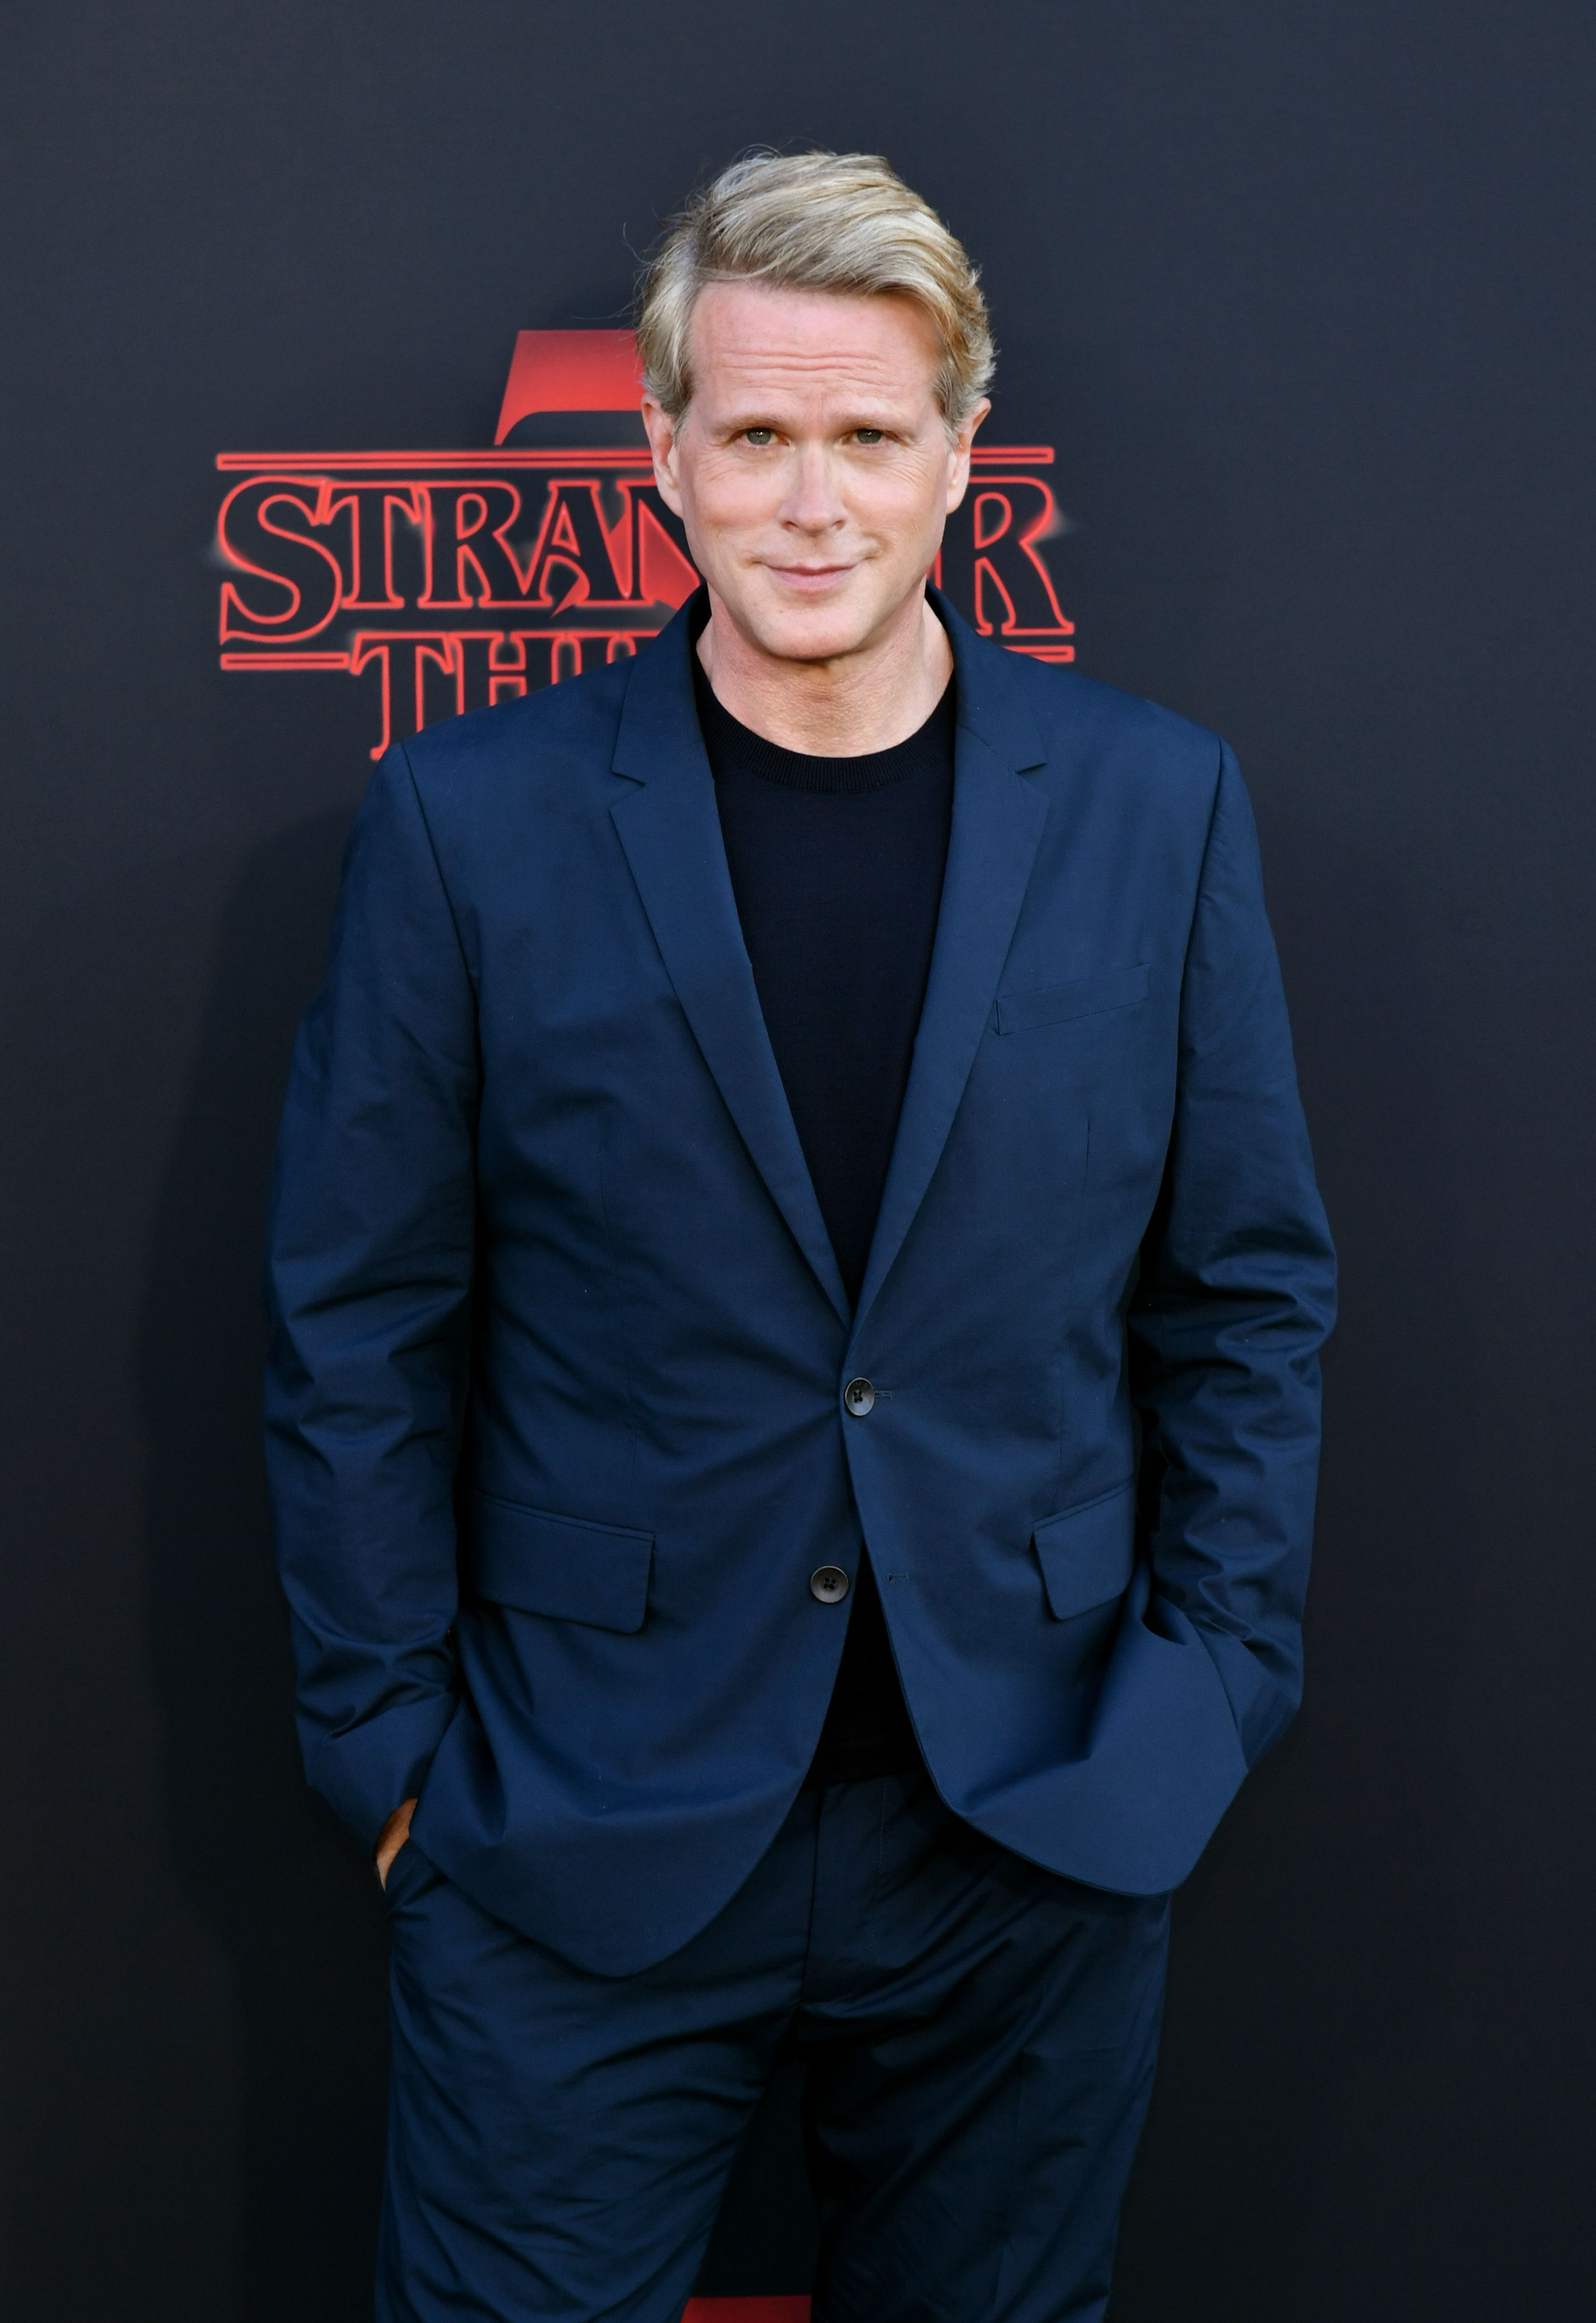 Actor Cary Elwes On The Red Carpet For Stranger Things 3 He Starred In Hot Shots Photo Credits Getty Images Cary Elwes Cary Movie Stars